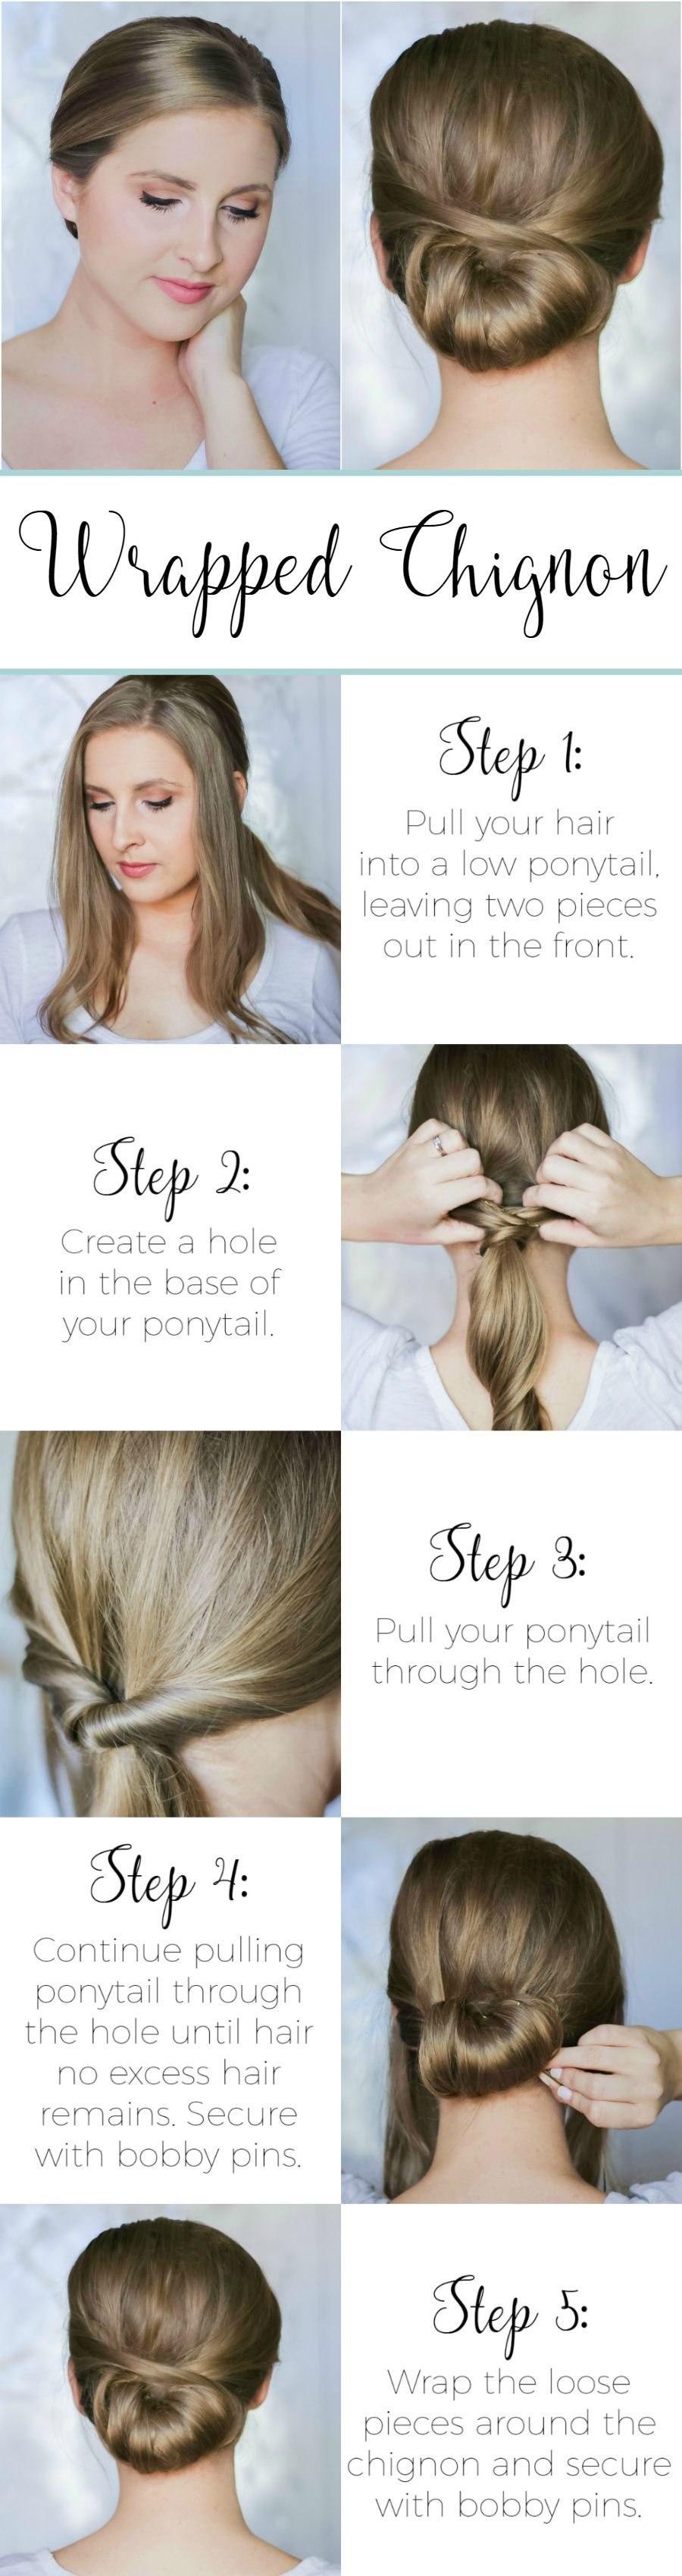 Easy Second-Day Hairstyles | Chignons, Elegant and Tutorials